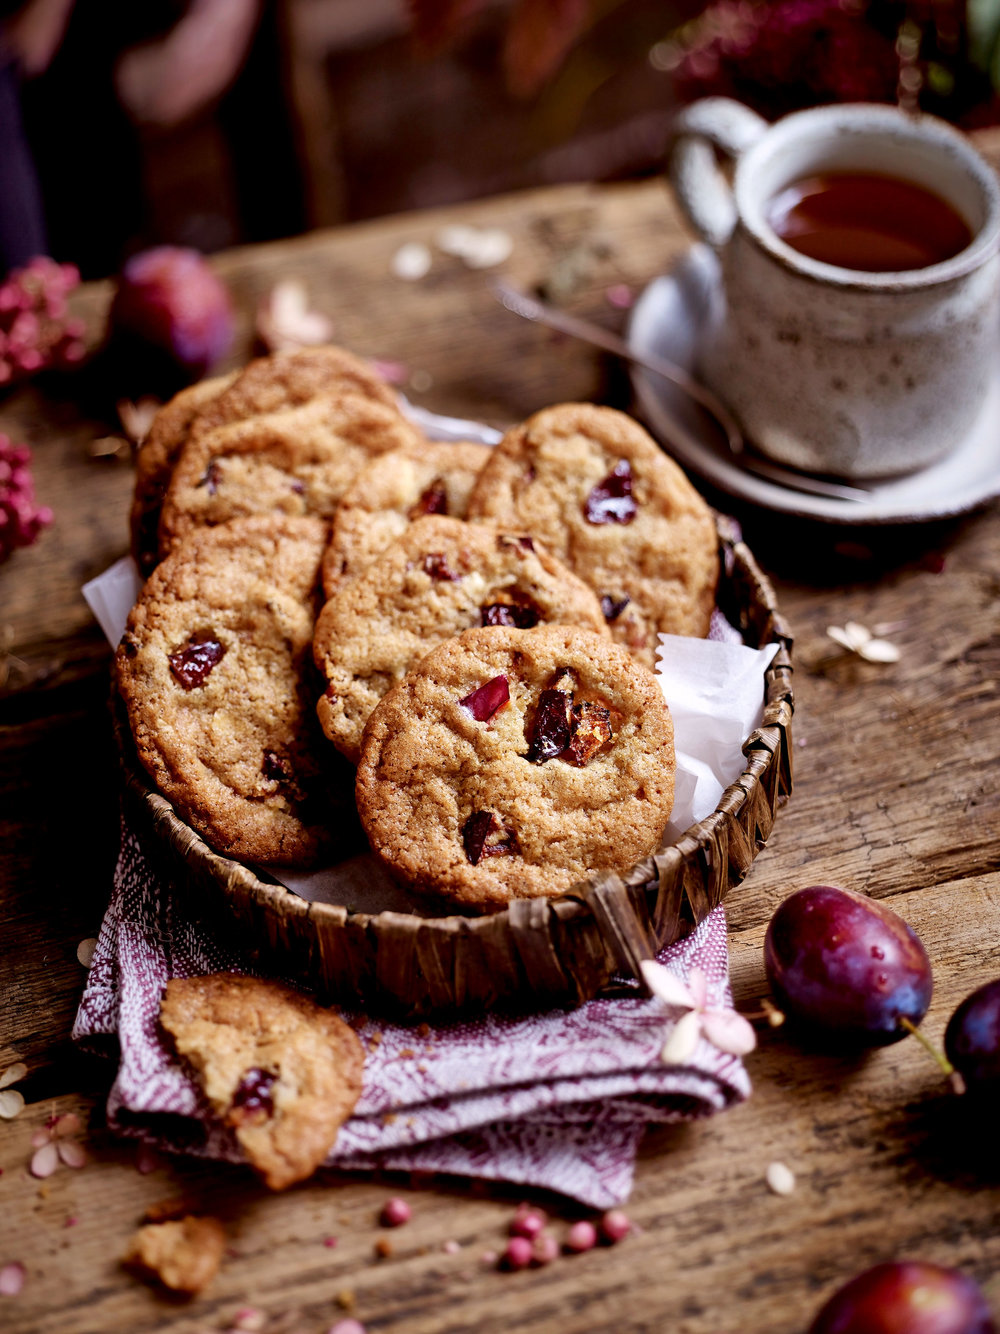 Chewy white chocolate and damson biscuits, perfect with tea. From a recipe in the September 2018 issue of Land Scape .